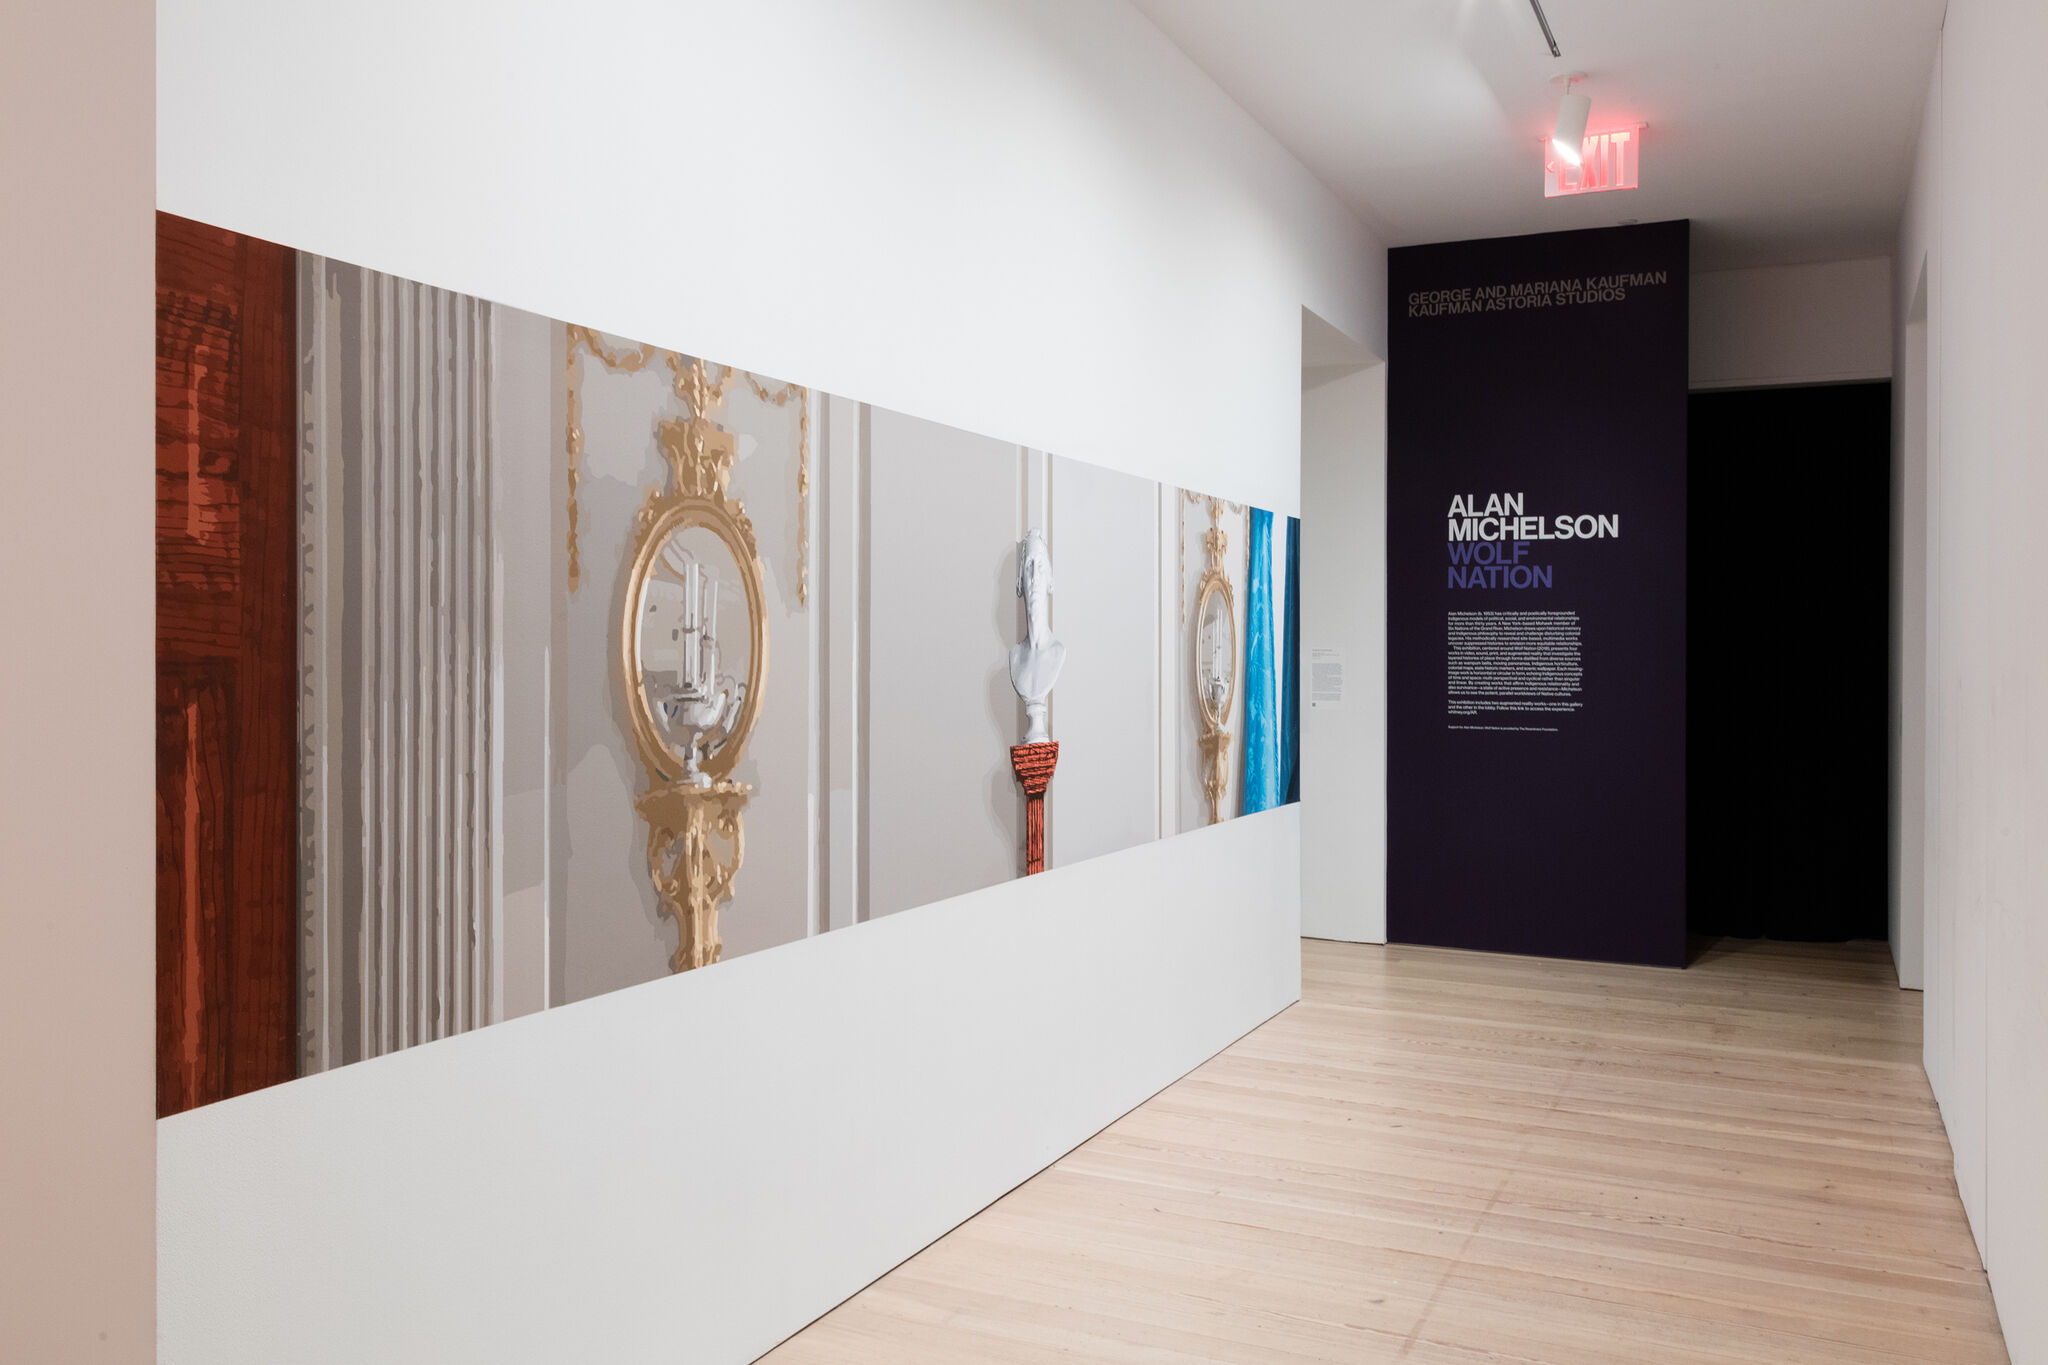 A hallway displaying a wide artwork depicting mirrors and a bust, along with wall text for the exhibition, Alan Michelson: Wolf Nation.